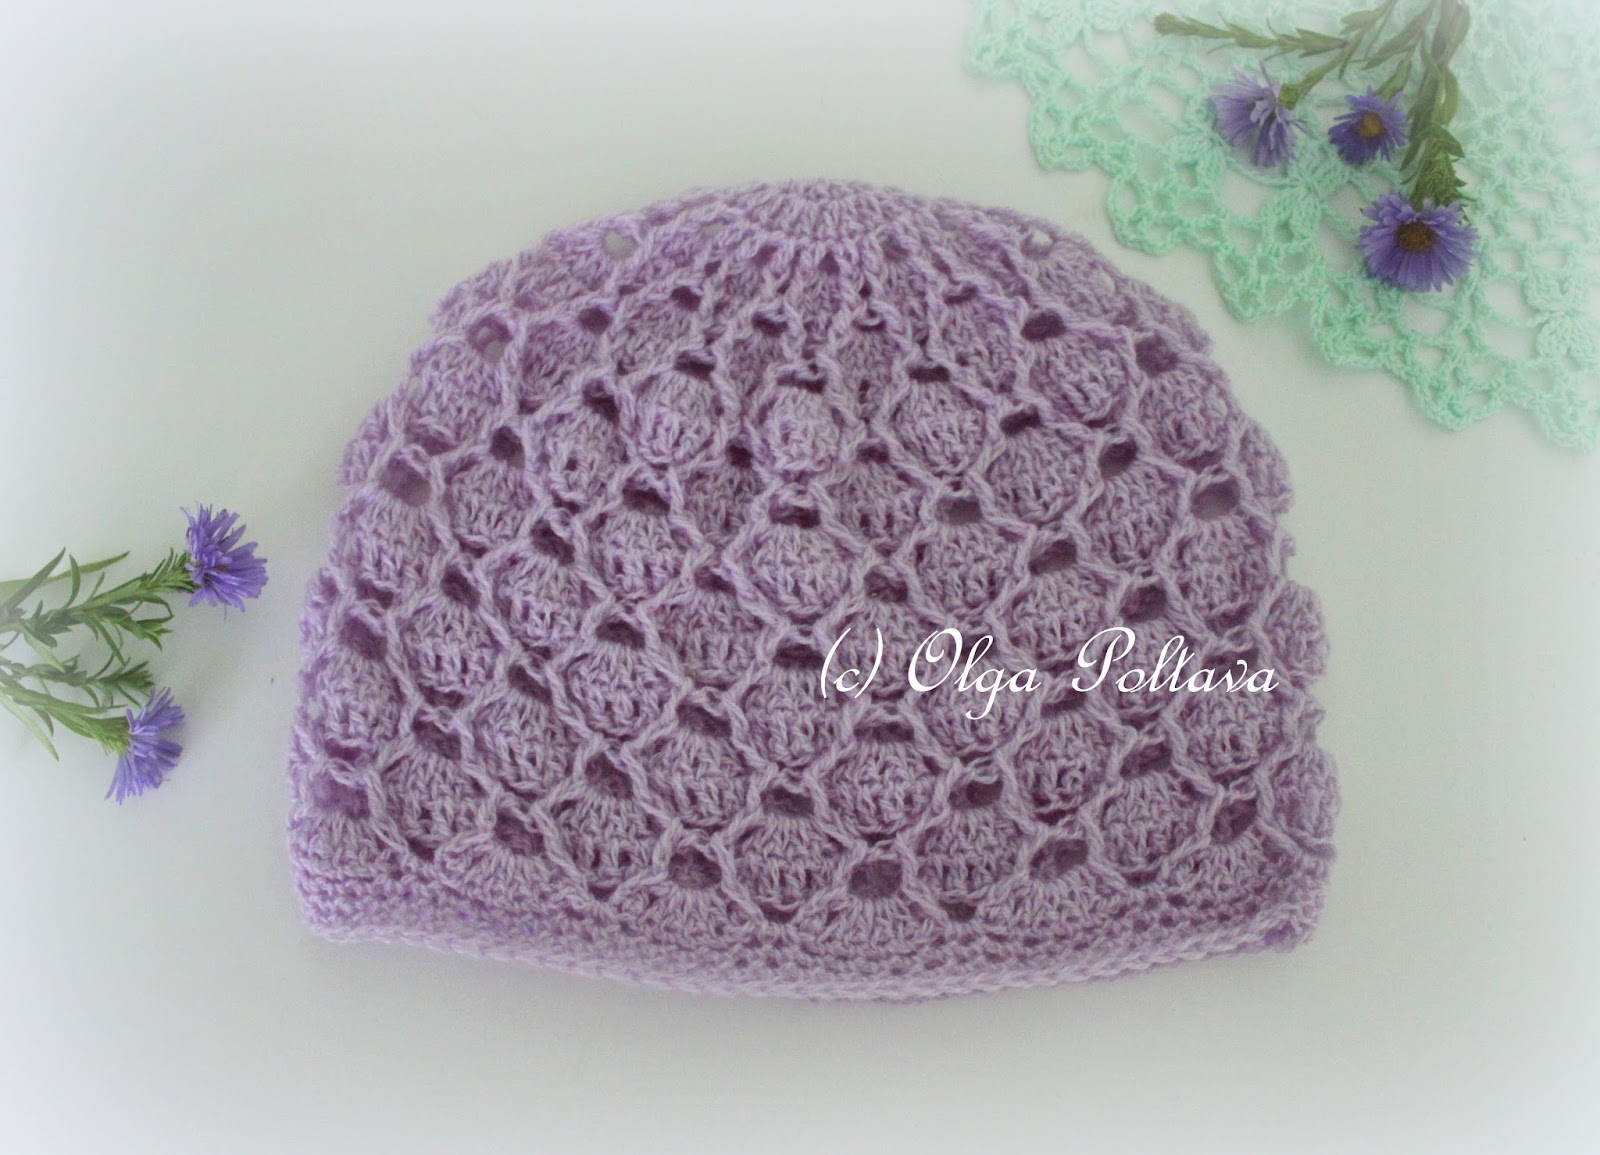 Free Baby Knitting Patterns Pinterest Top Quality Crochet Ba Hat Patterns On Pinterest Deb37 57f3f